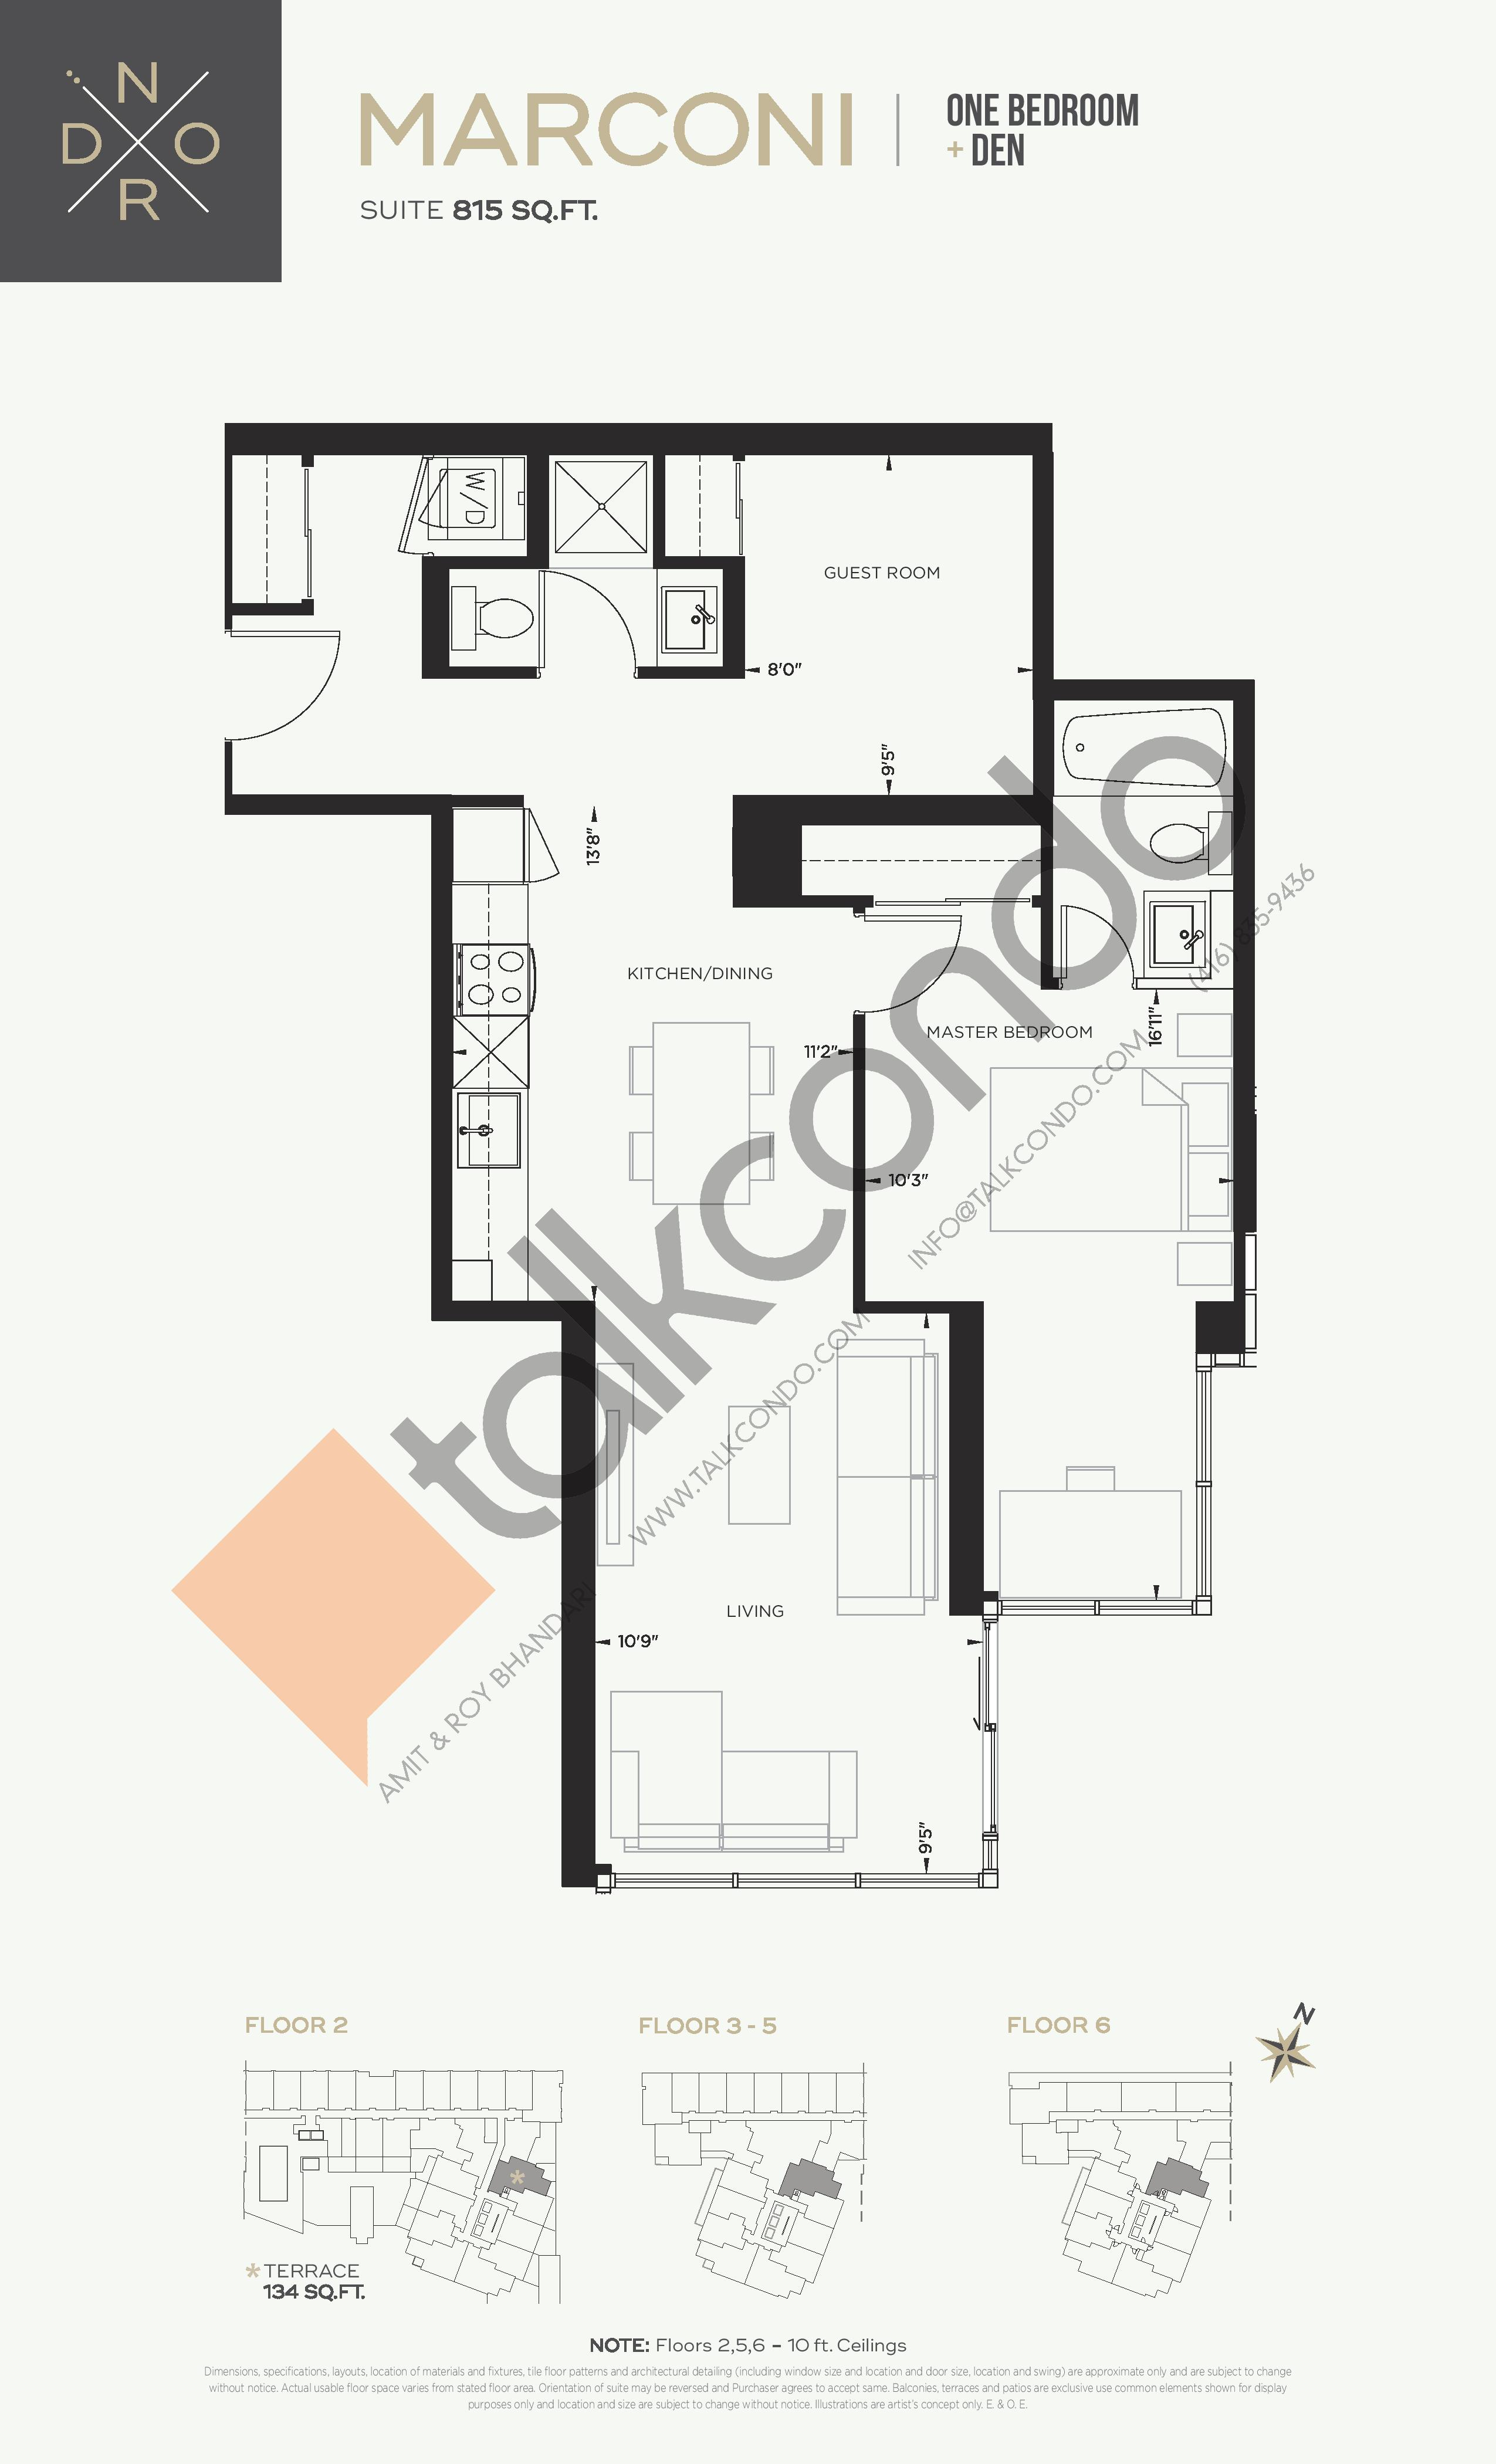 Marconi Floor Plan at Nord West at Expo City Condos - 815 sq.ft